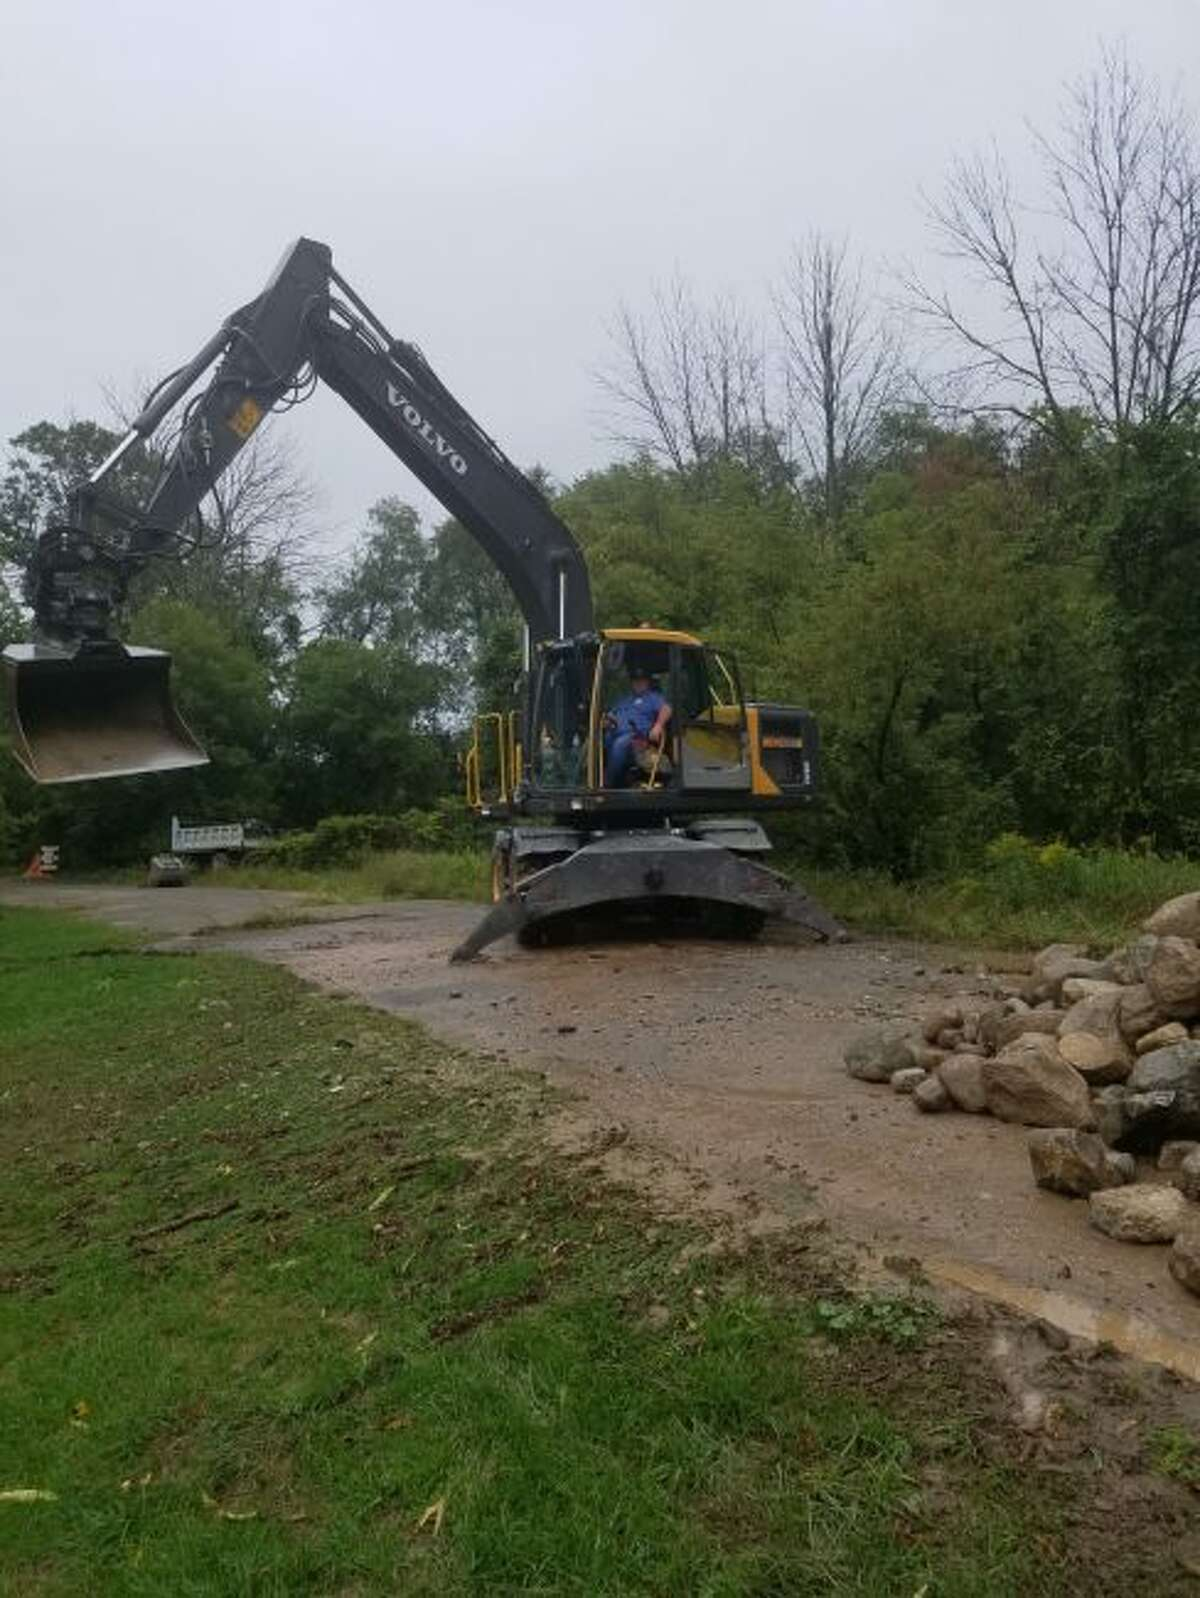 Scott Morningstar, with Morningstar Excavating, began work on the construction of a culvert at Spruce Road in Green Township on Tuesday. (Courtesy photo)